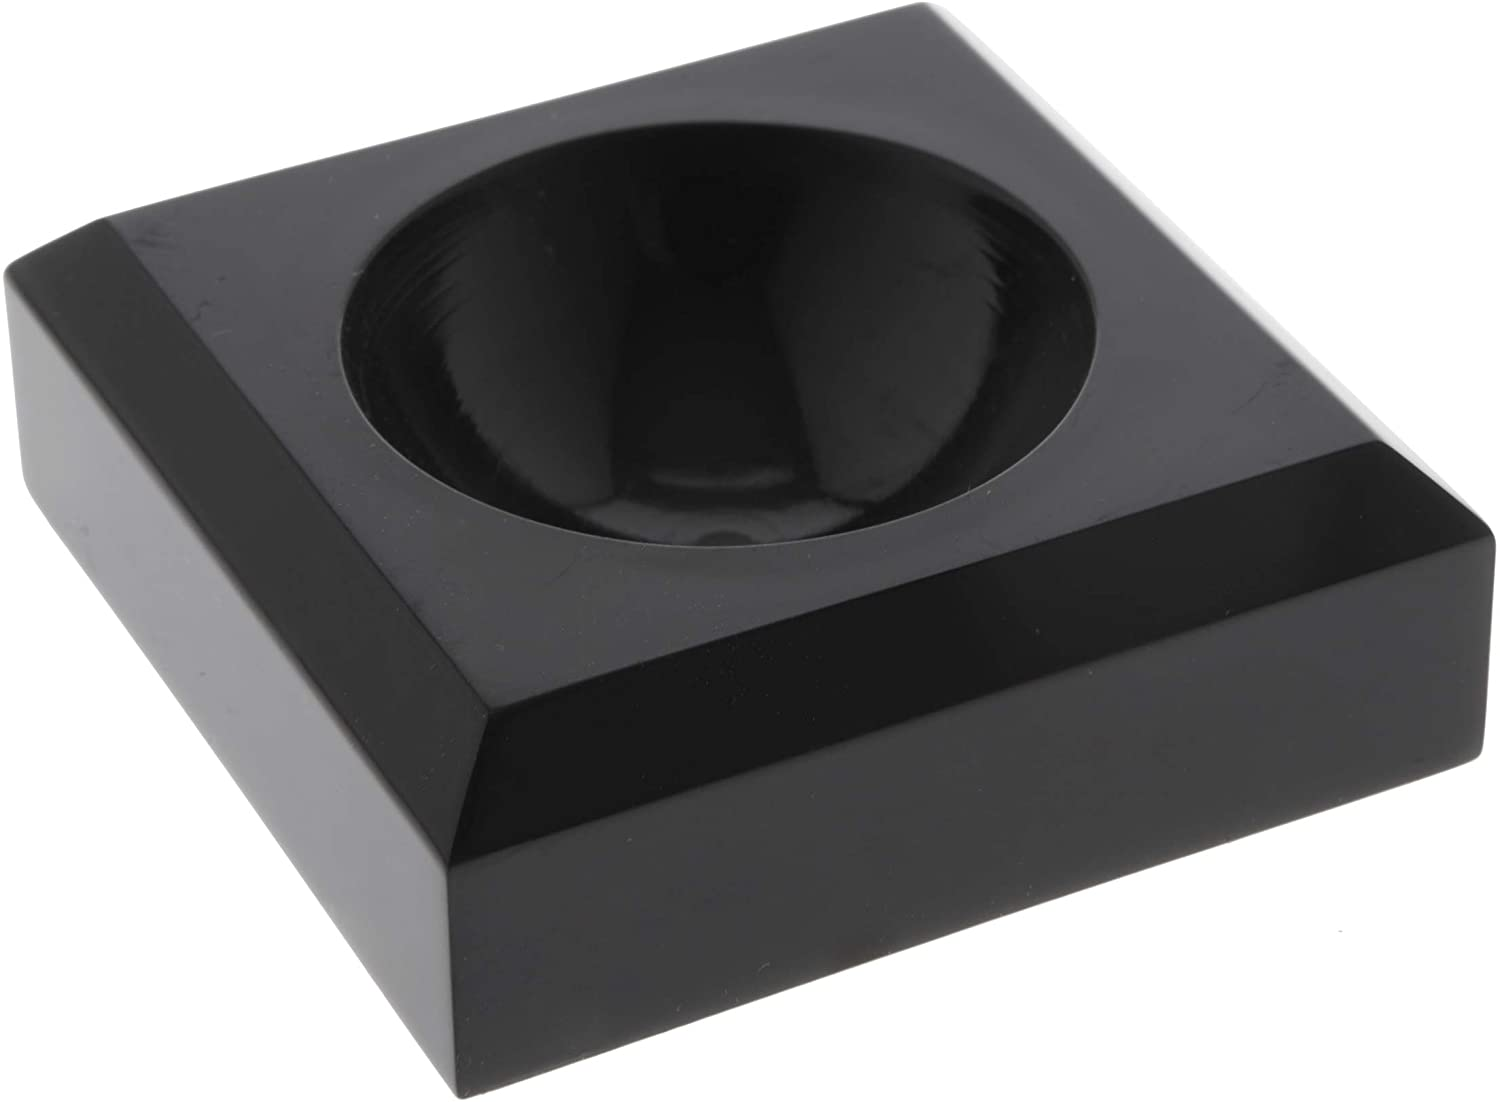 Plymor Black Acrylic Square Display Base with Indented Circle to Hold Egg, Marble, Ball or Sphere, 0.75